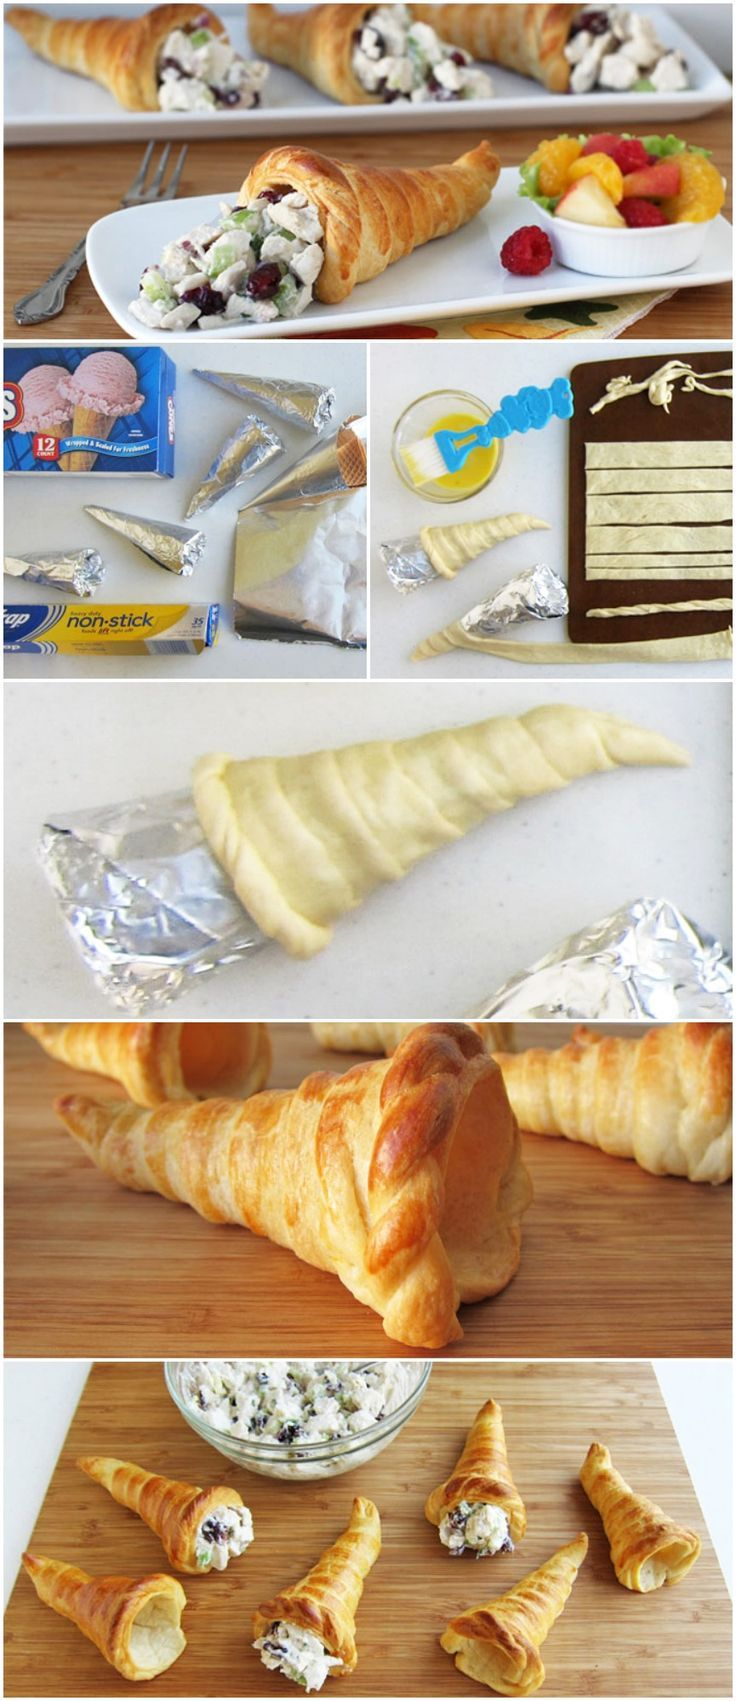 Share your abundance of left over Thanksgiving turkey by stuffing some beautiful cornucopia made from Pillsbury Crescent Rolls!